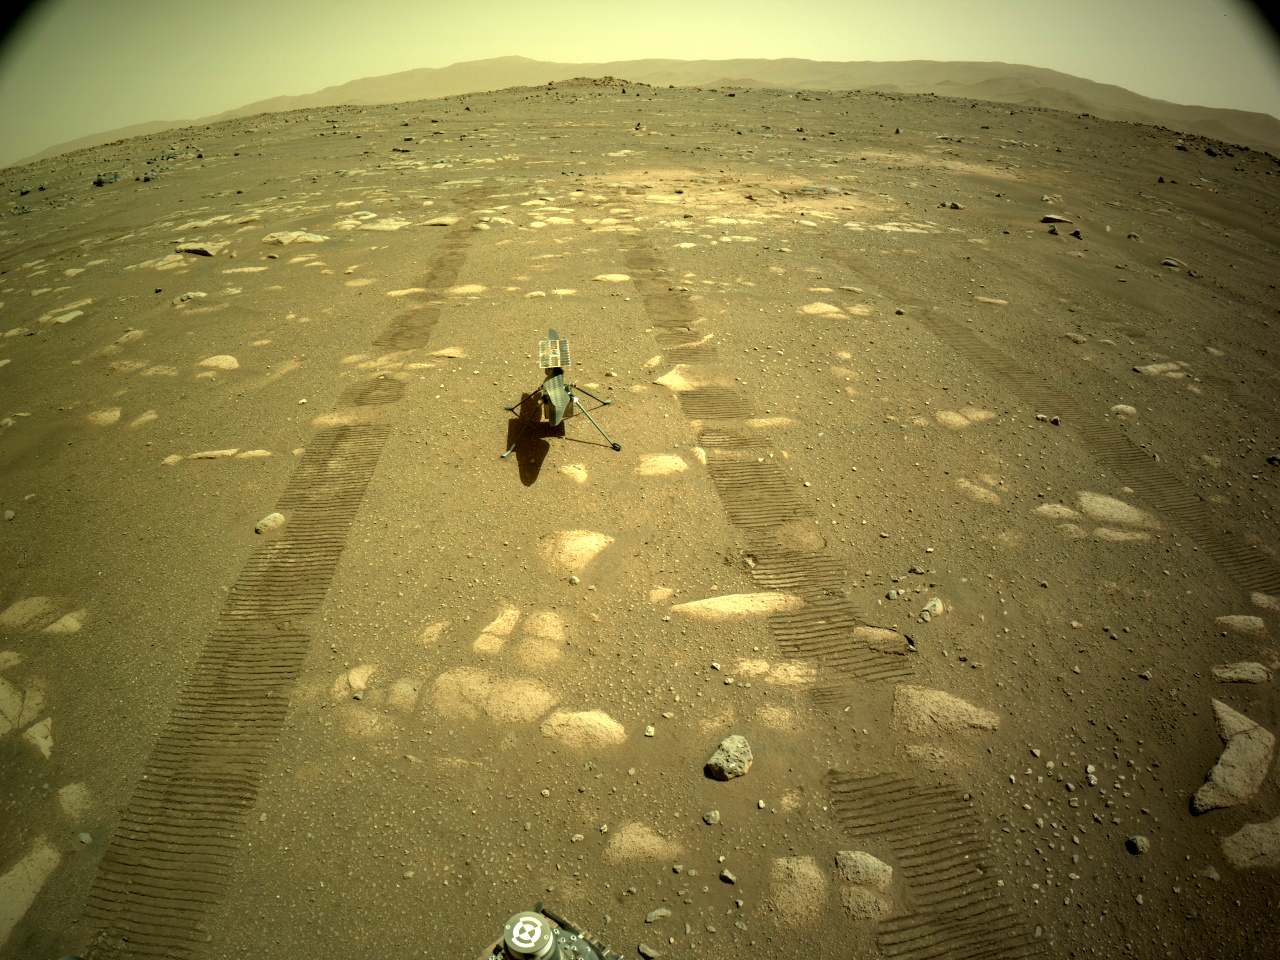 NASA's Mars Perseverance rover acquired this image using its onboard Right Navigation Camera